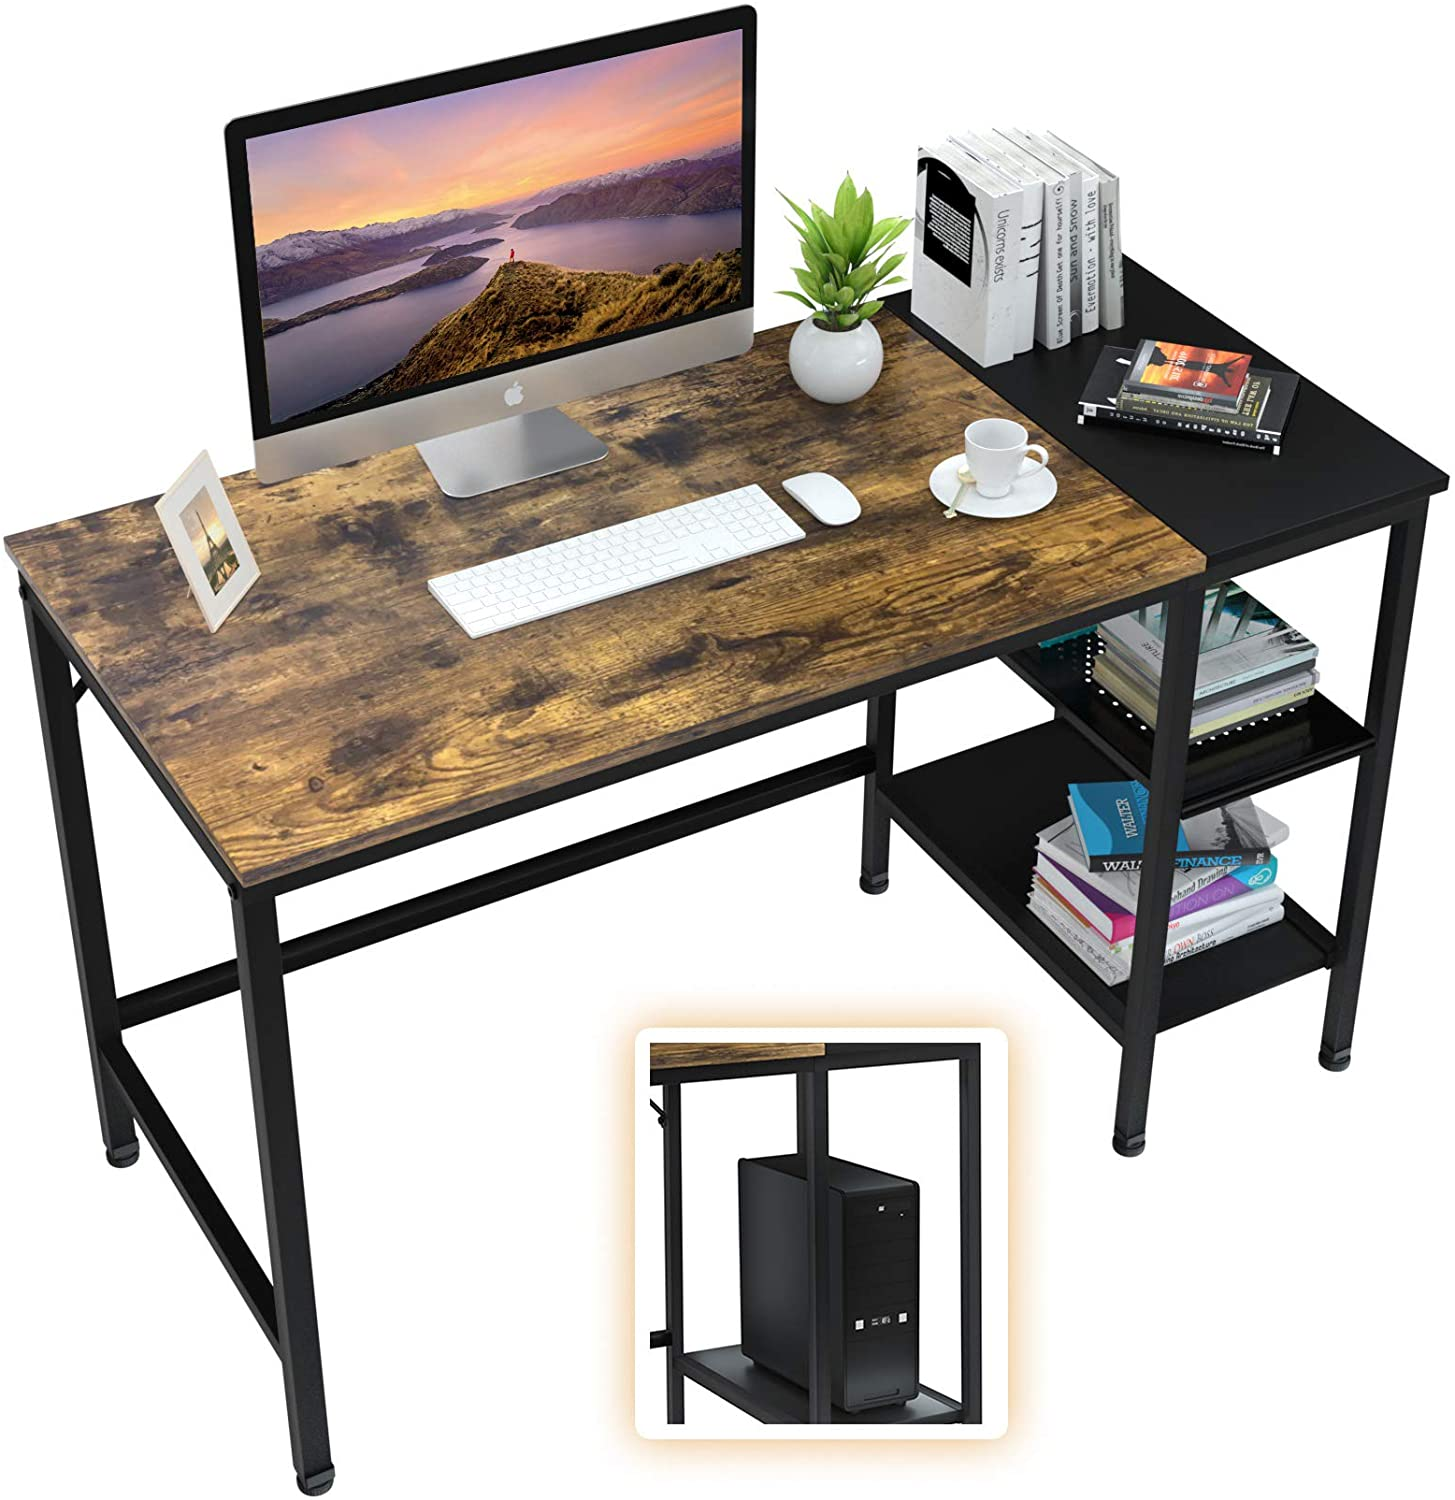 Computer-Gaming-Desk-with-storage-shelves